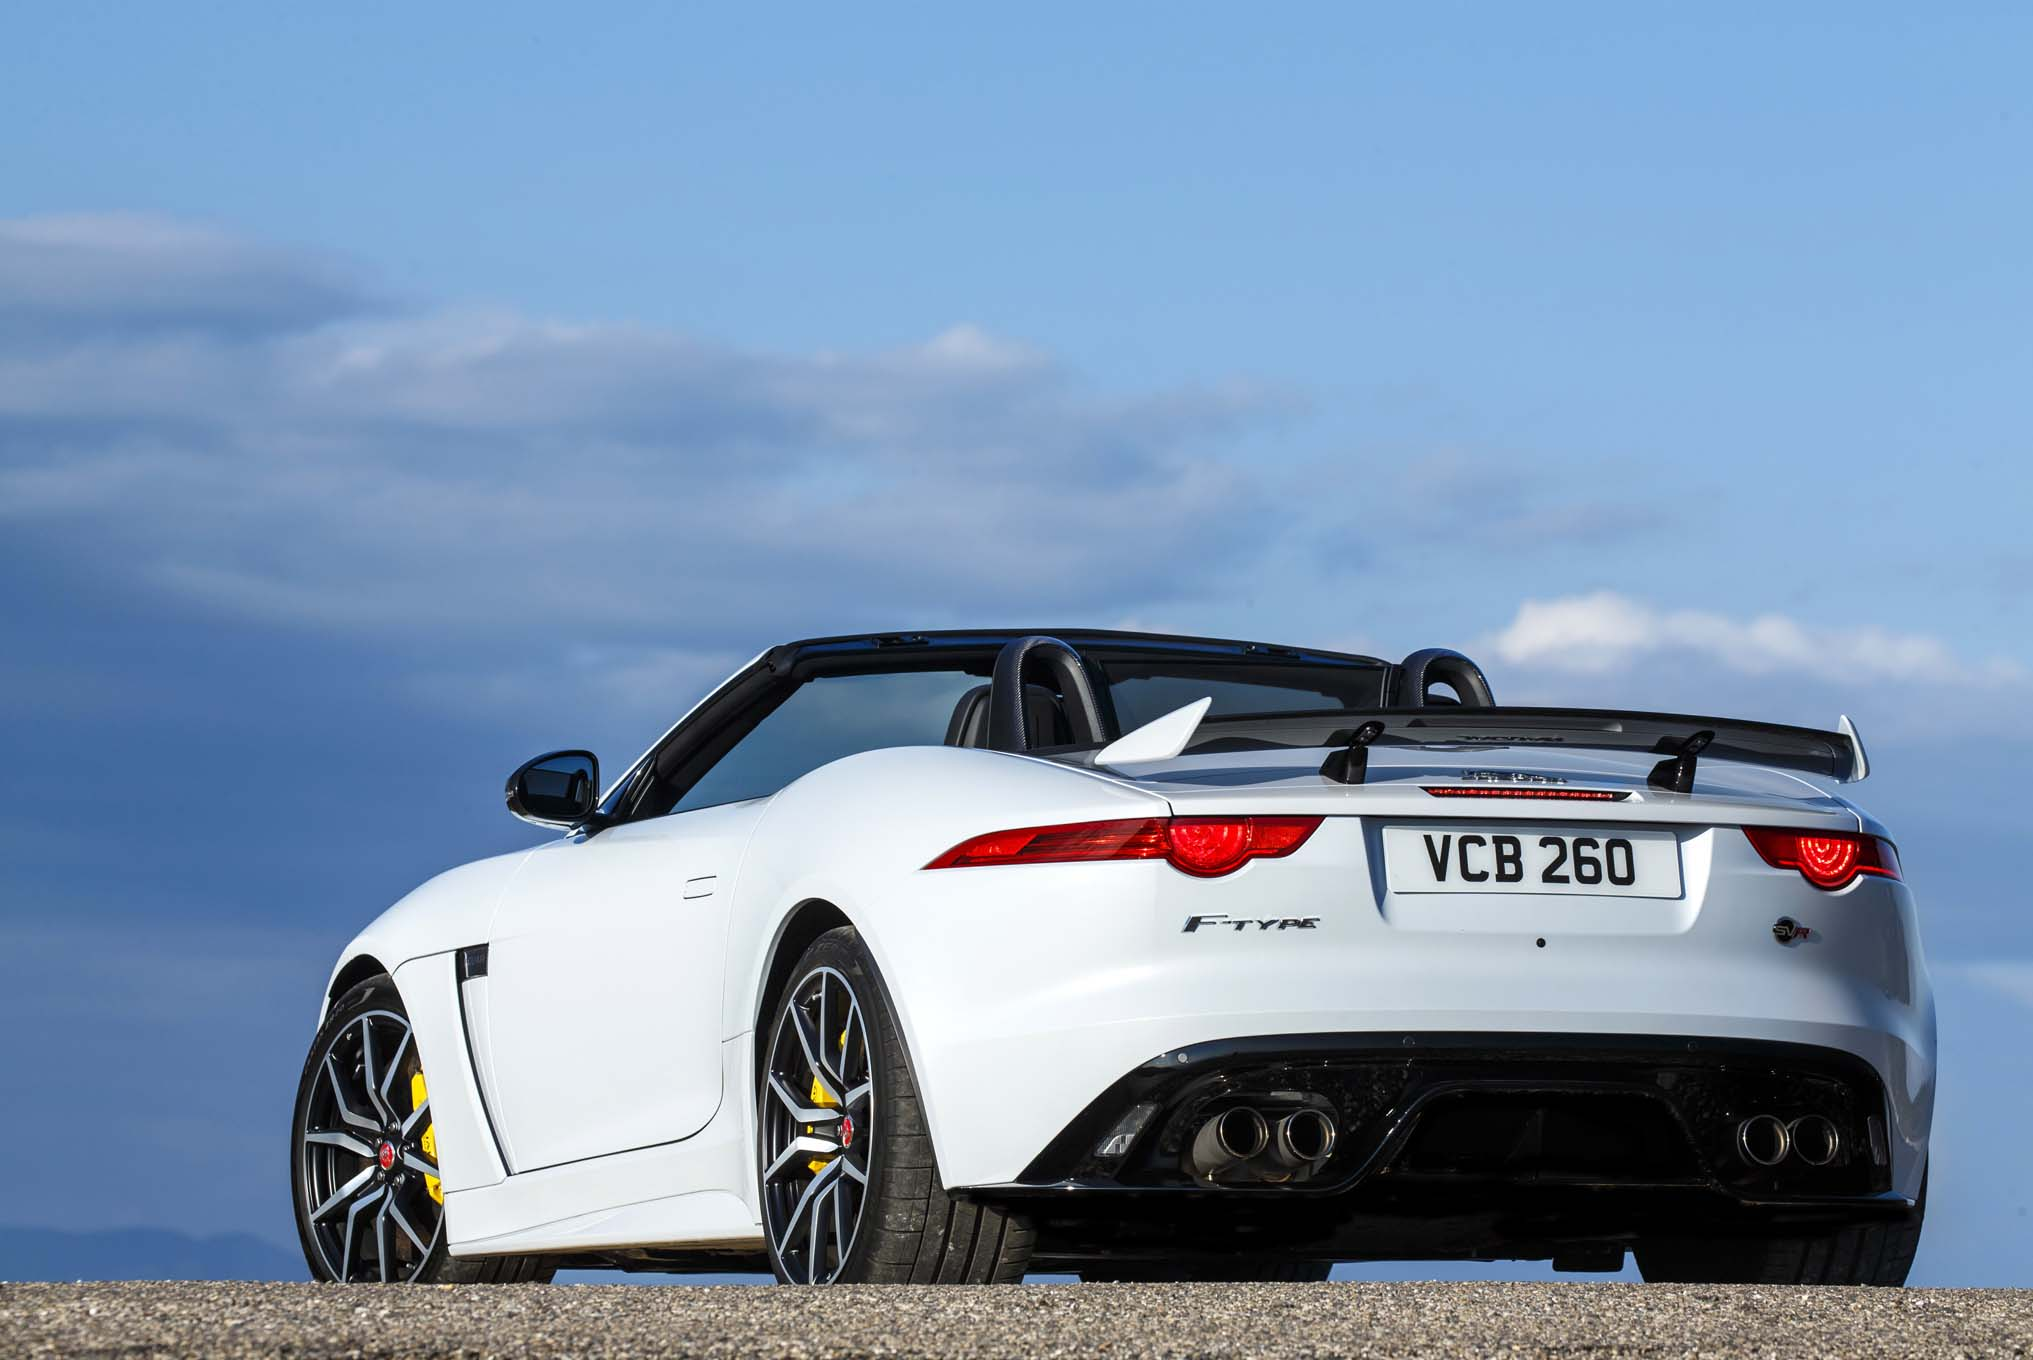 for r in transmission convertible manual jaguar more adds awd motion sale show three front quarter news coupe f type